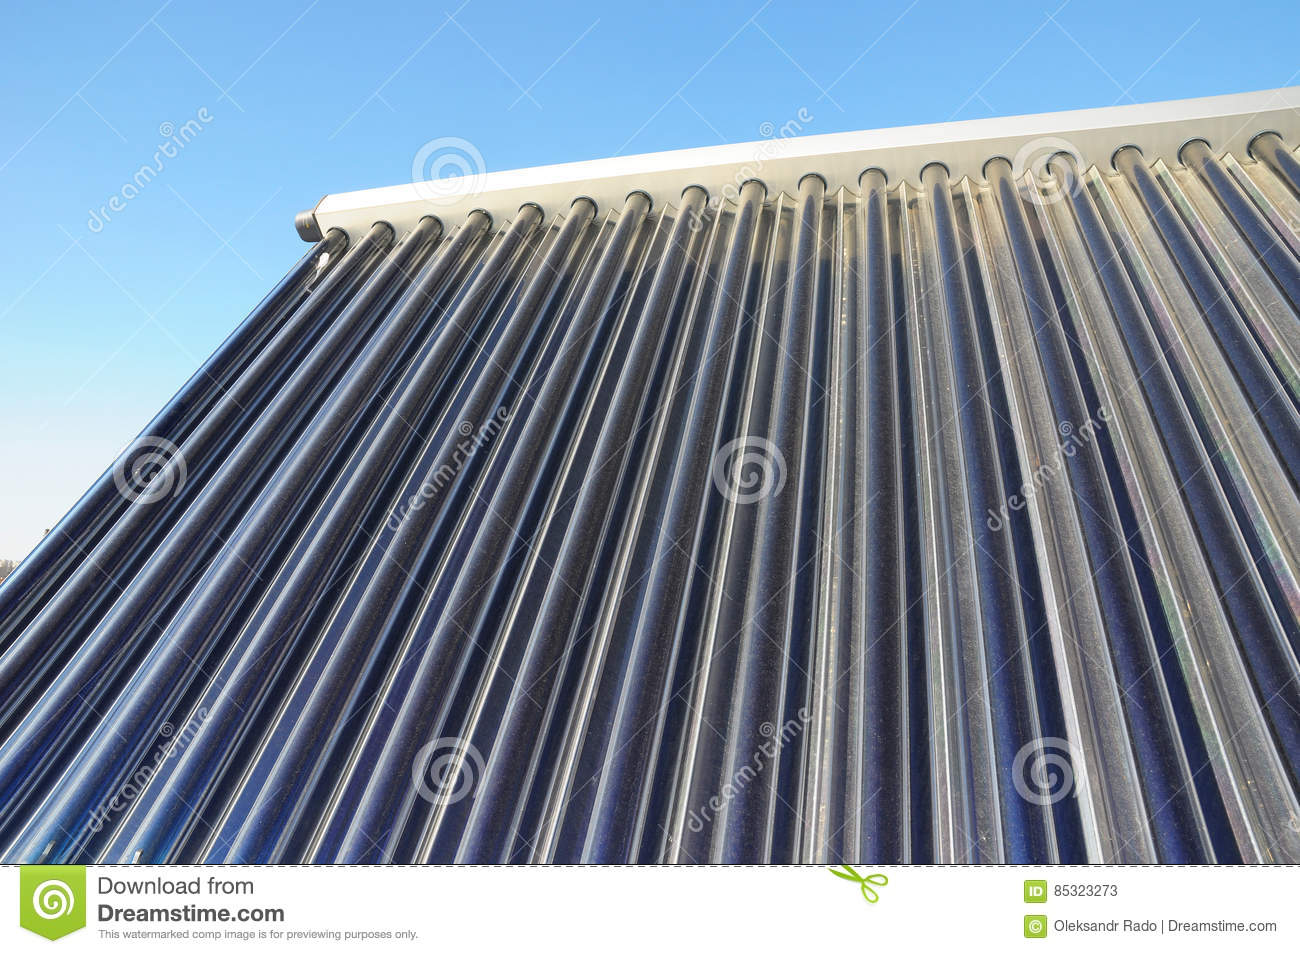 Solar Hot water panels heating. Solar water heating SWH systems use solar panels, called